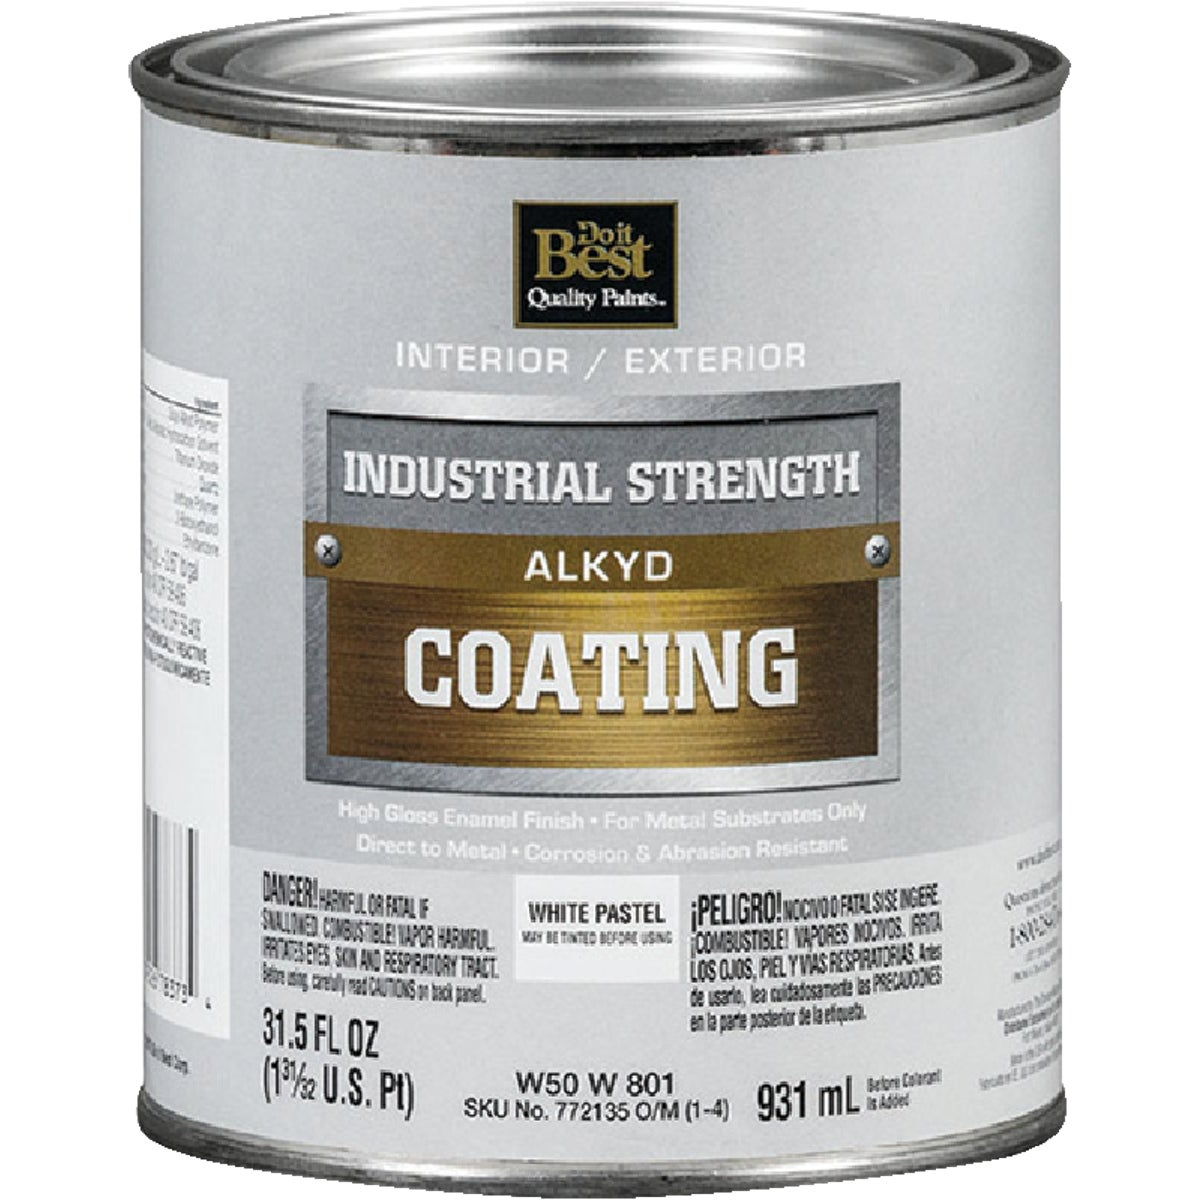 GLS PSTL/WHT ALKYD PAINT - W50W00801-44 by Do it Best